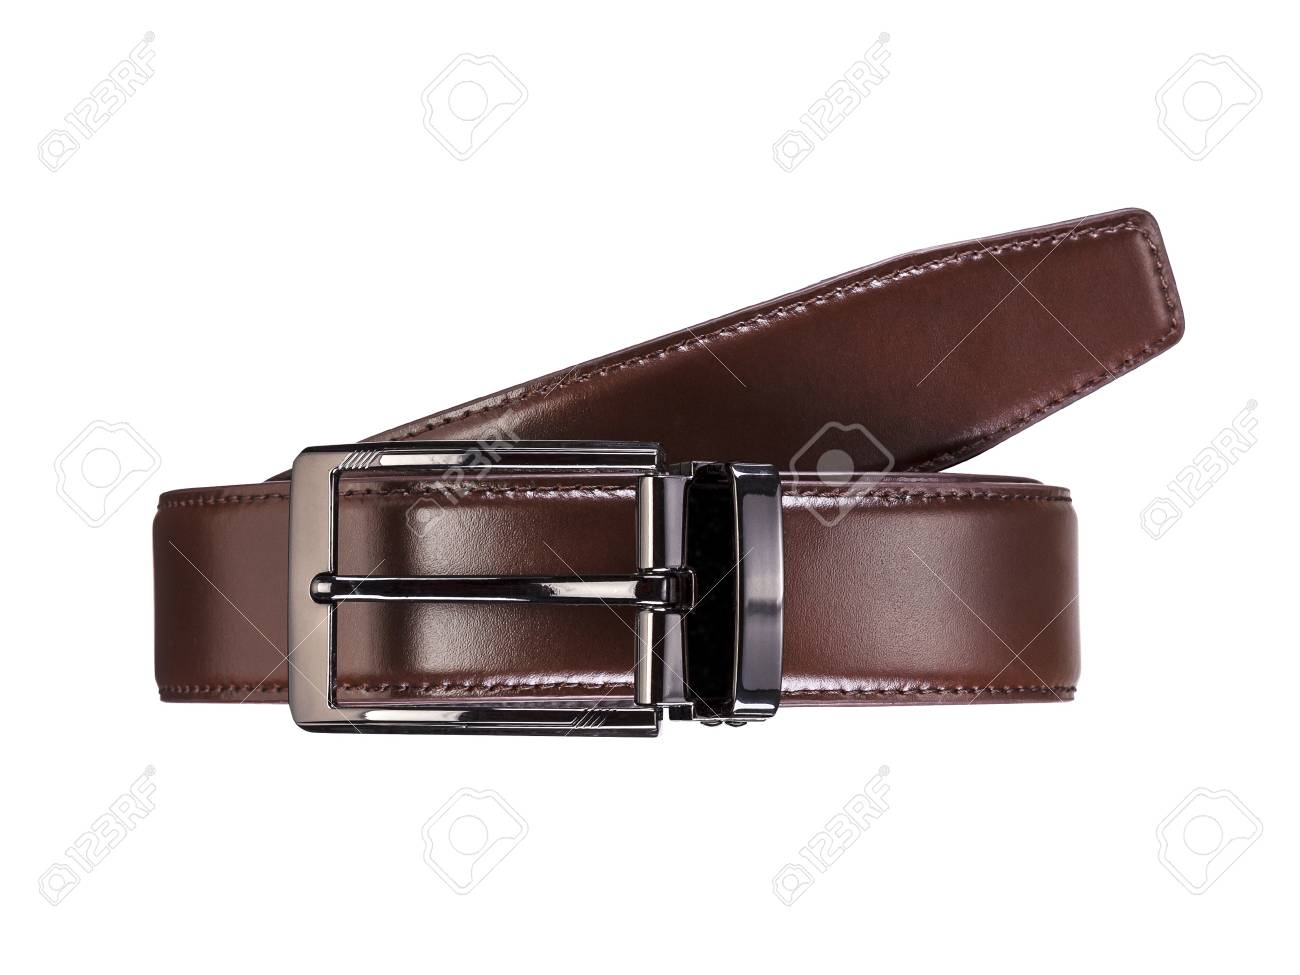 Mens Brown Leather Belt With Dark Matted Metal Buckle Isolated 1300x975